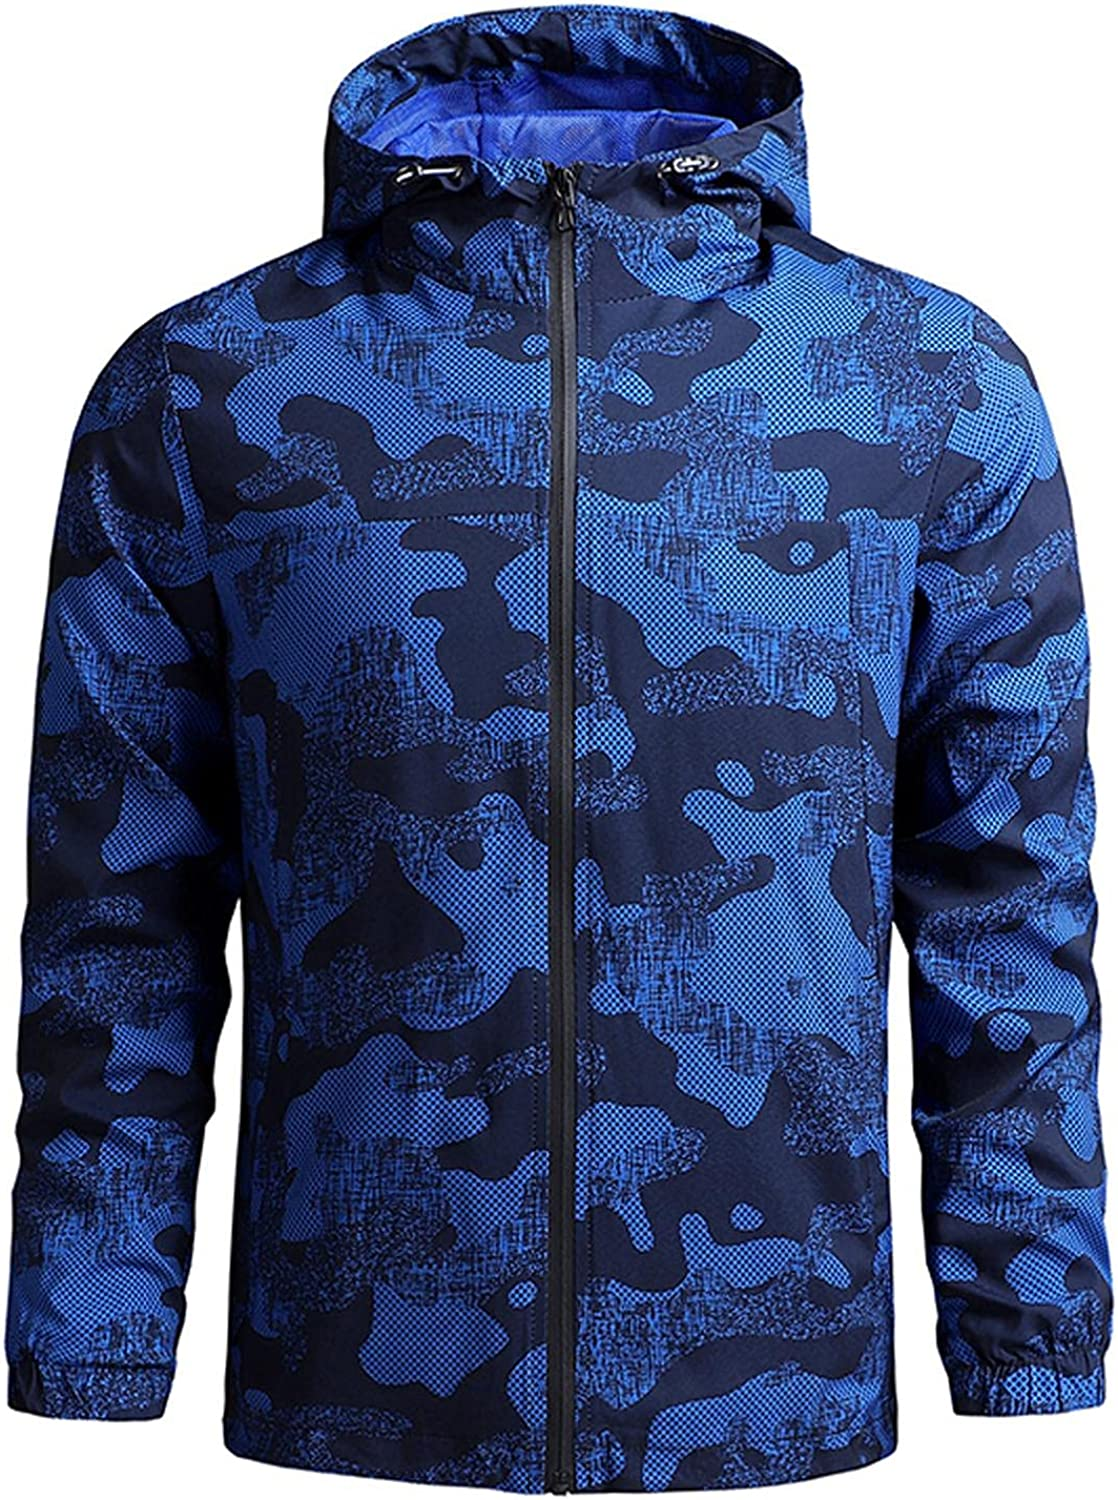 Huangse Men's Casual Lightweight Military Camouflage Hooded Jacket Windproof Zip up Camo Outerwear Coat with Pocket